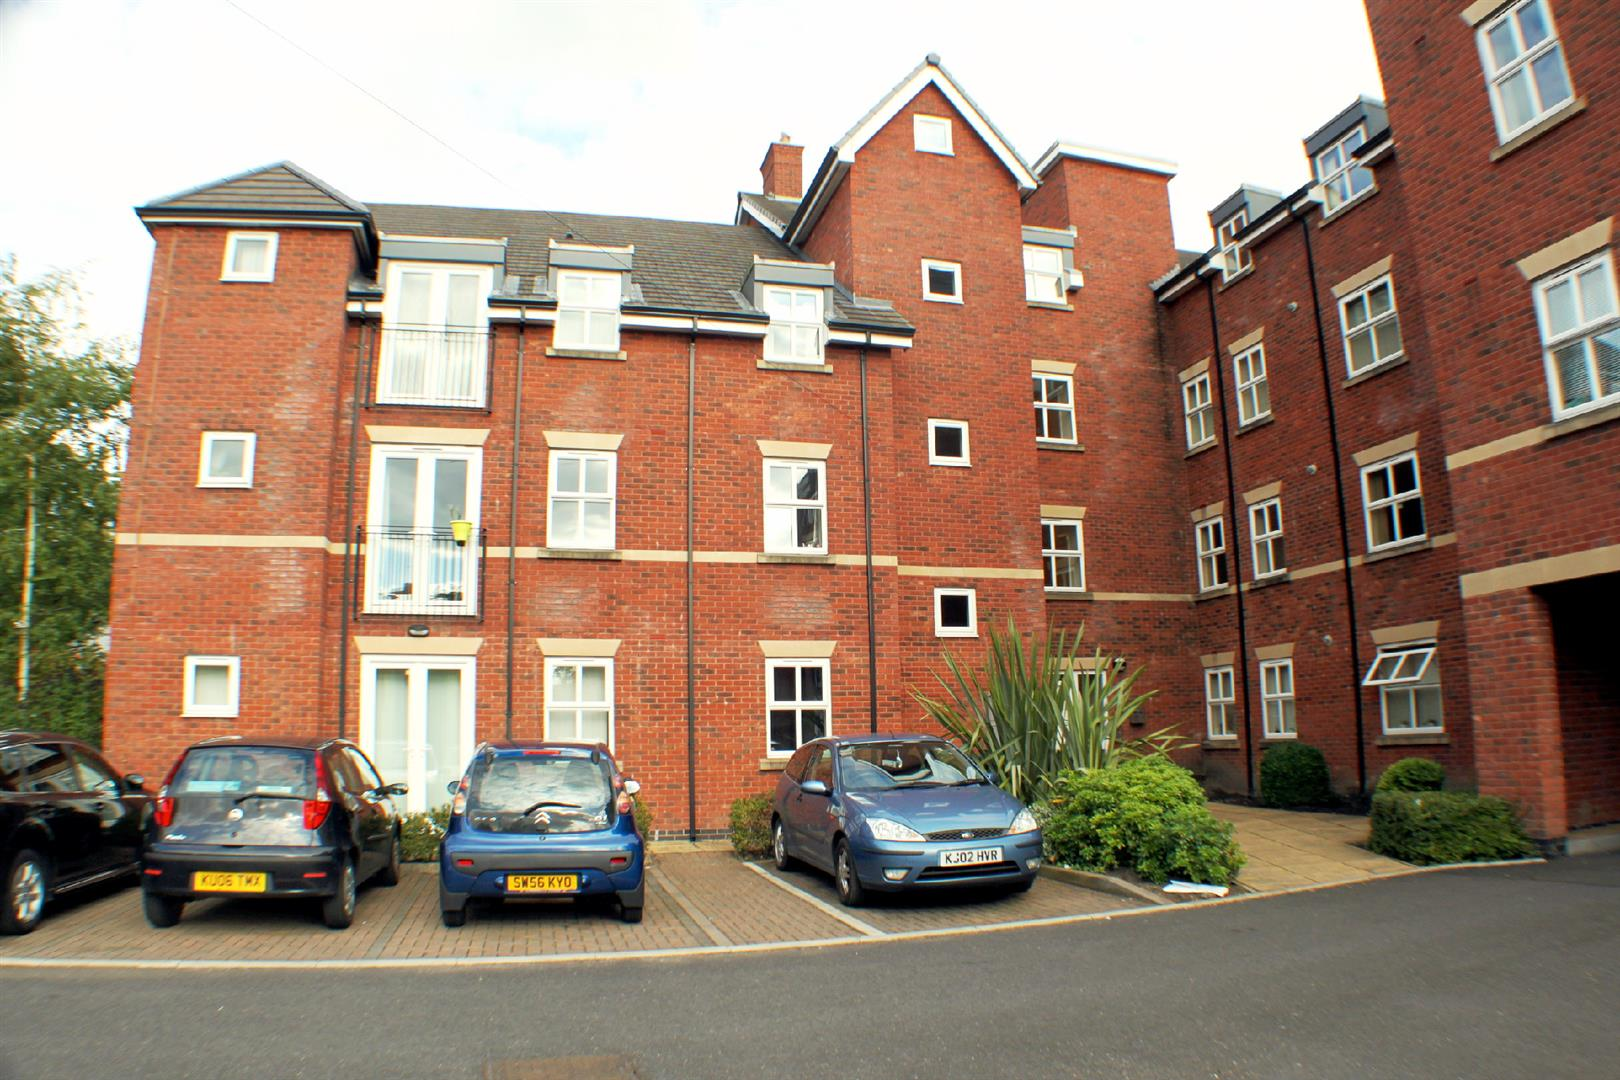 2 Bedrooms Flat for rent in Clarendon Place, Eccles